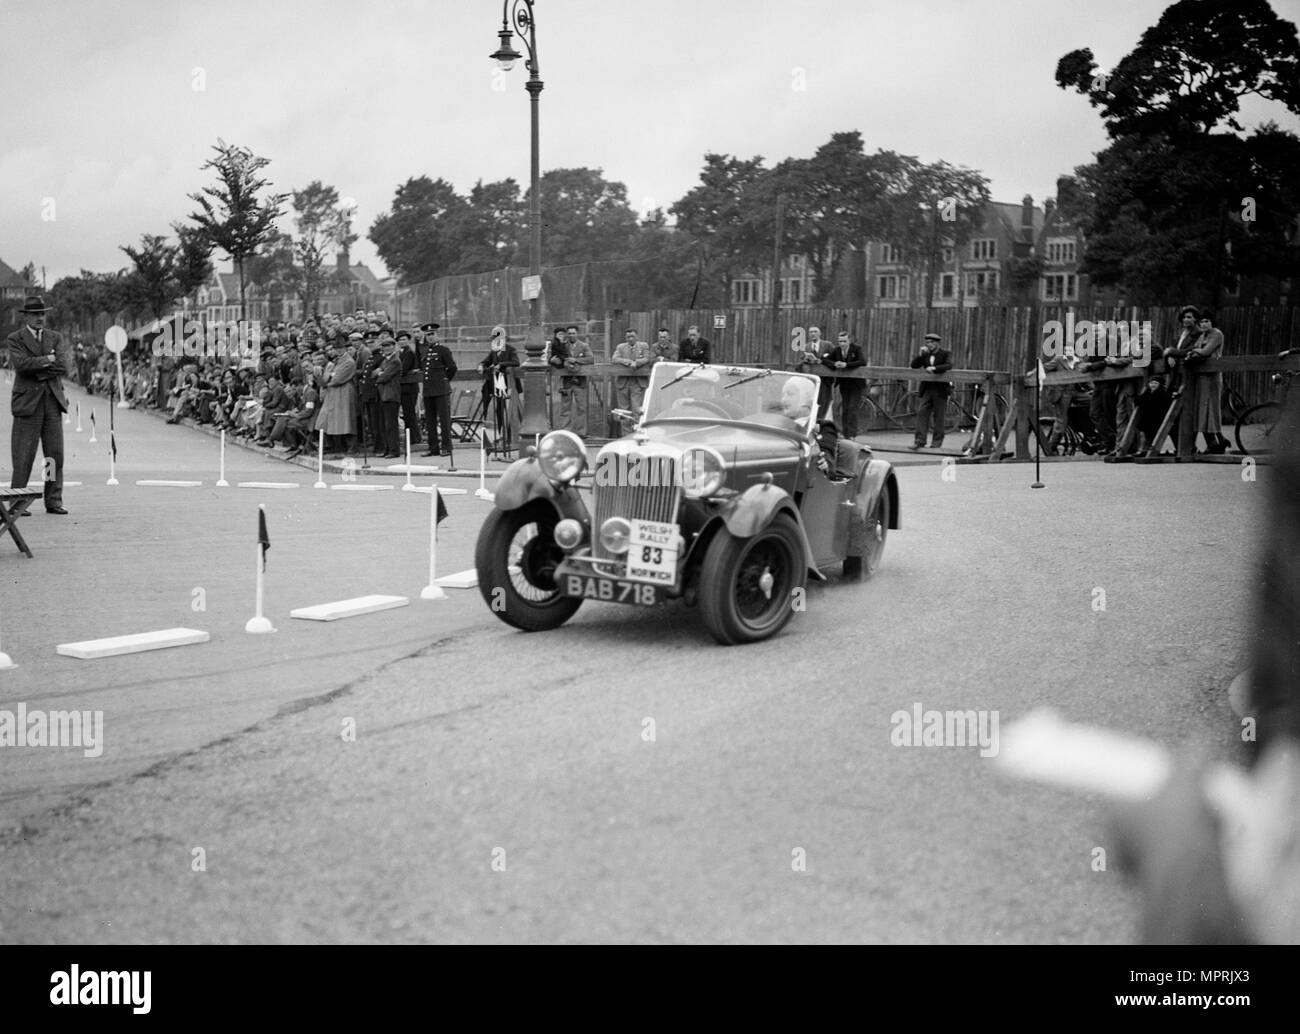 Singer B37 1.5 litre sports of FS Barnes competing in the South Wales Auto Club Welsh Rally, 1937 Artist: Bill Brunell. - Stock Image